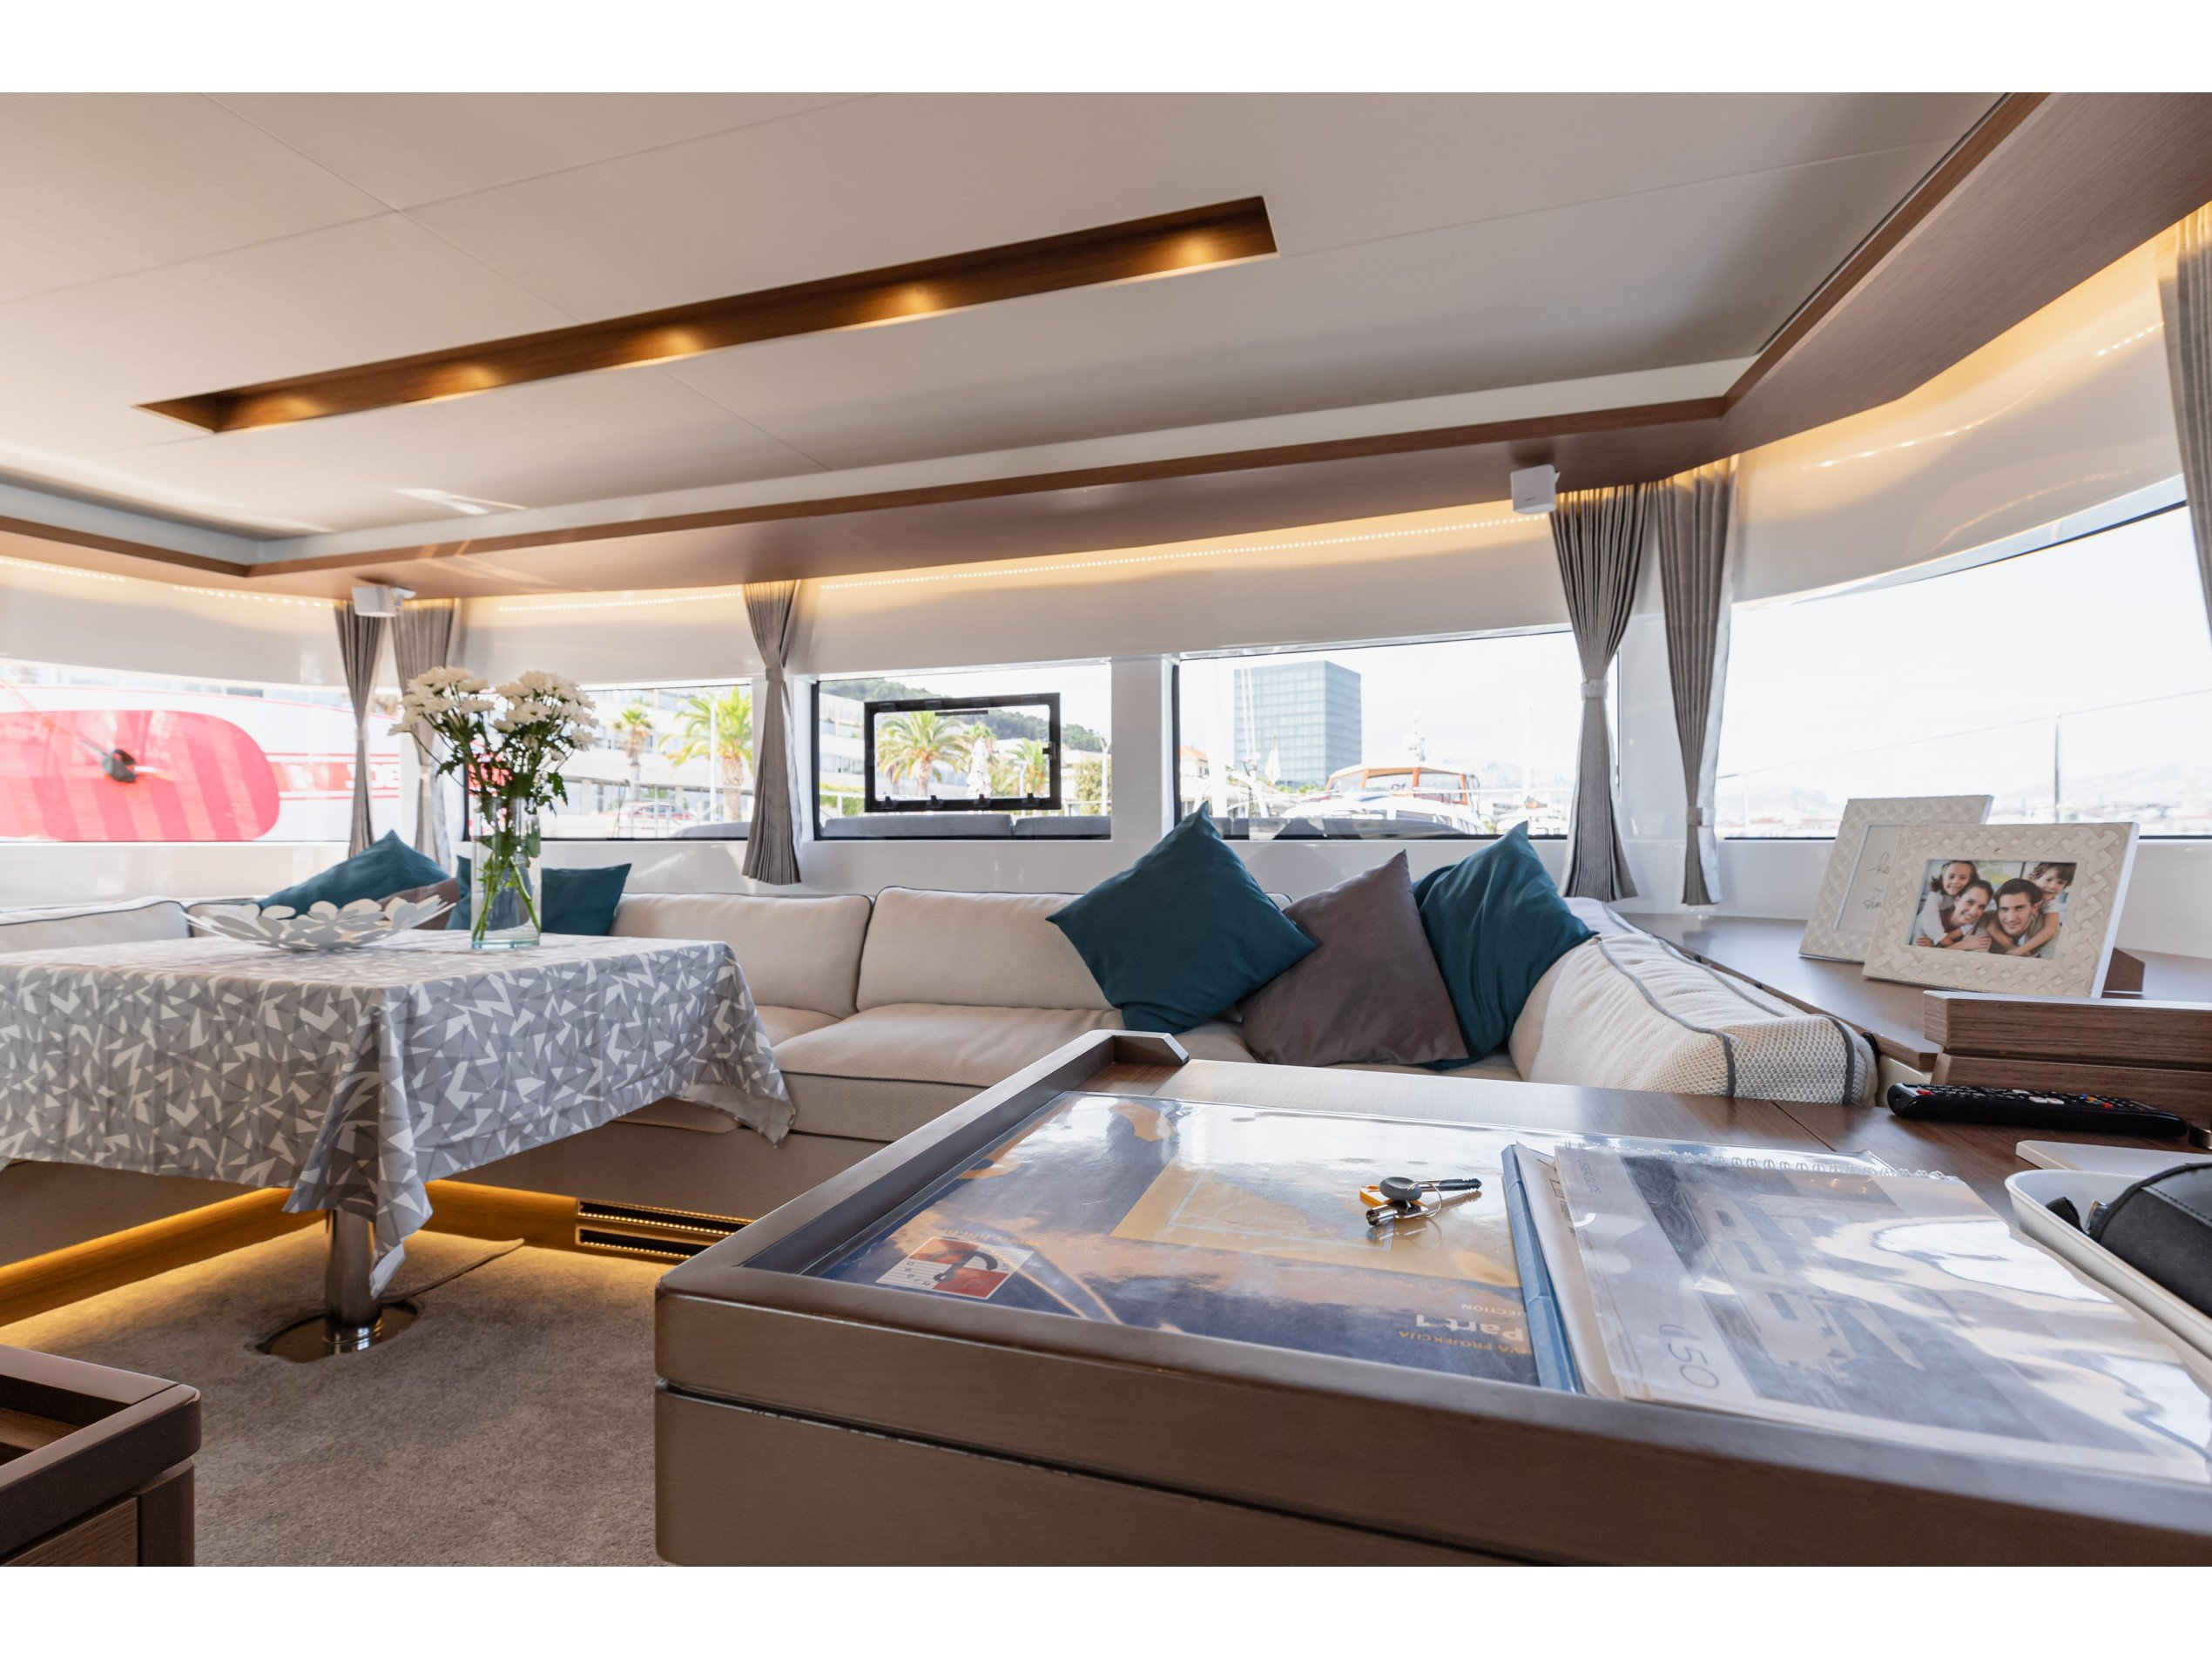 Lagoon 50 LUX (2020) equipped with airconditioning (PRINCESS KISS) Interior image - 4